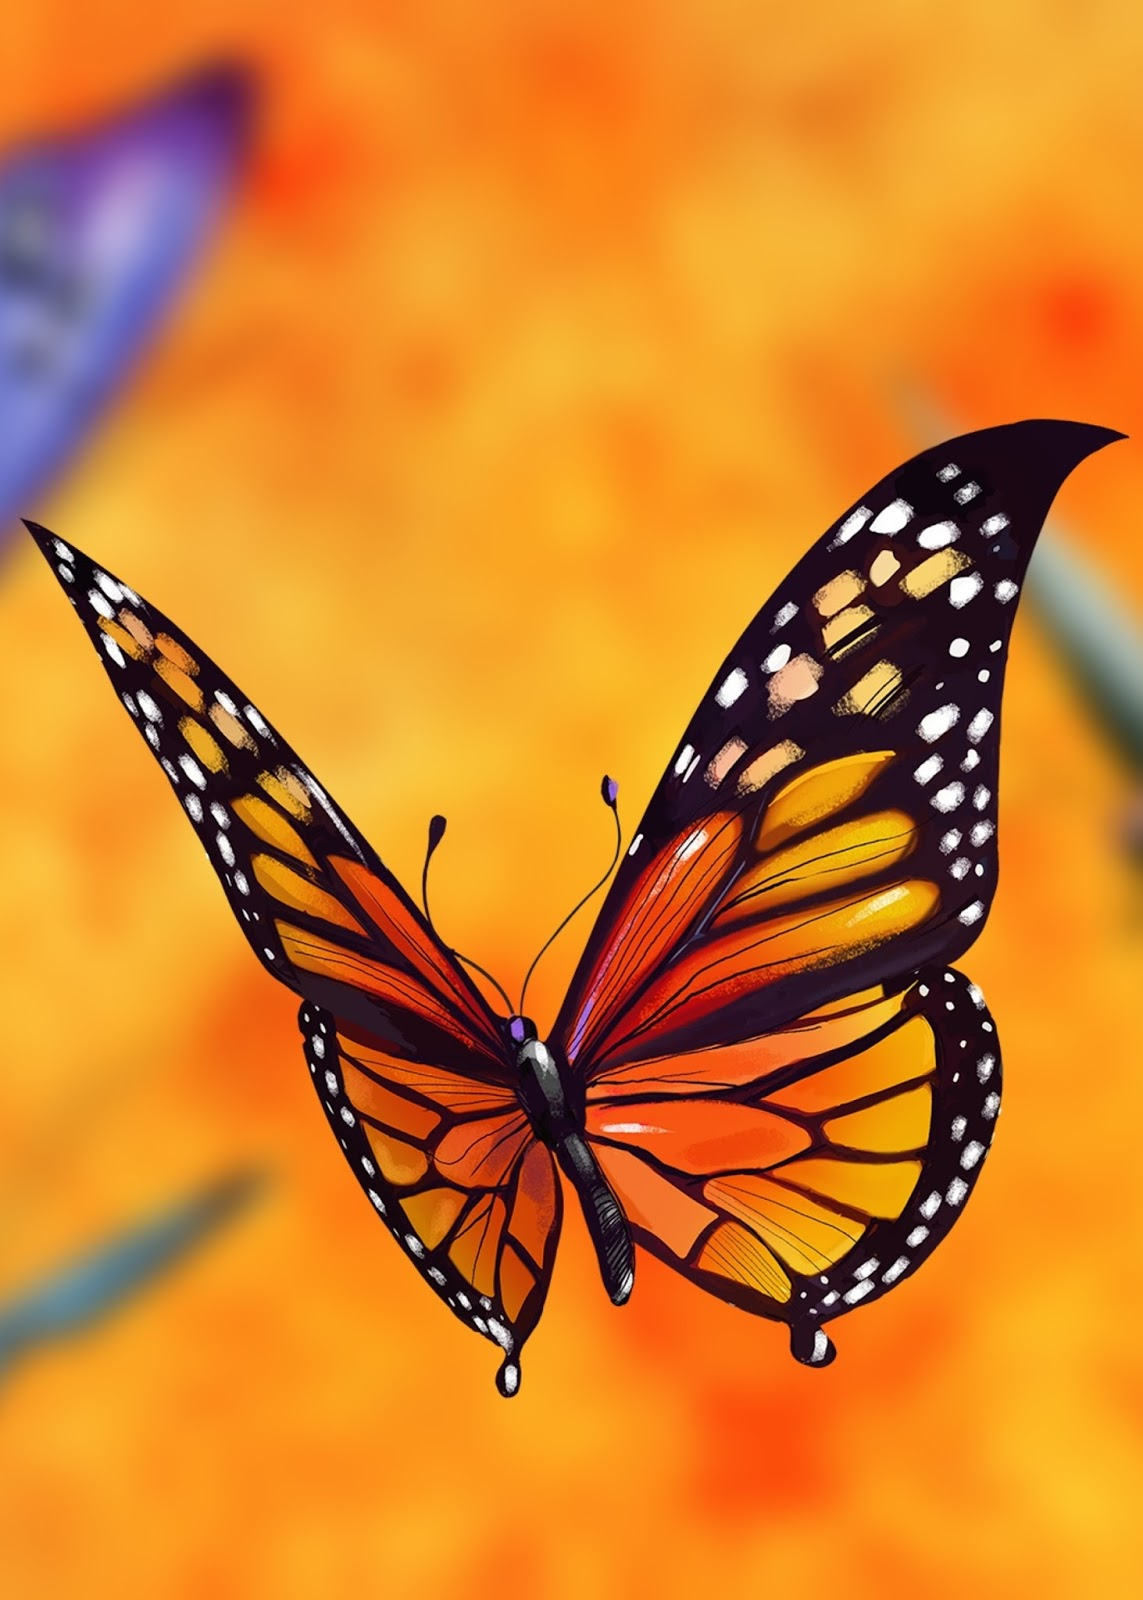 A animated butterfly flying.